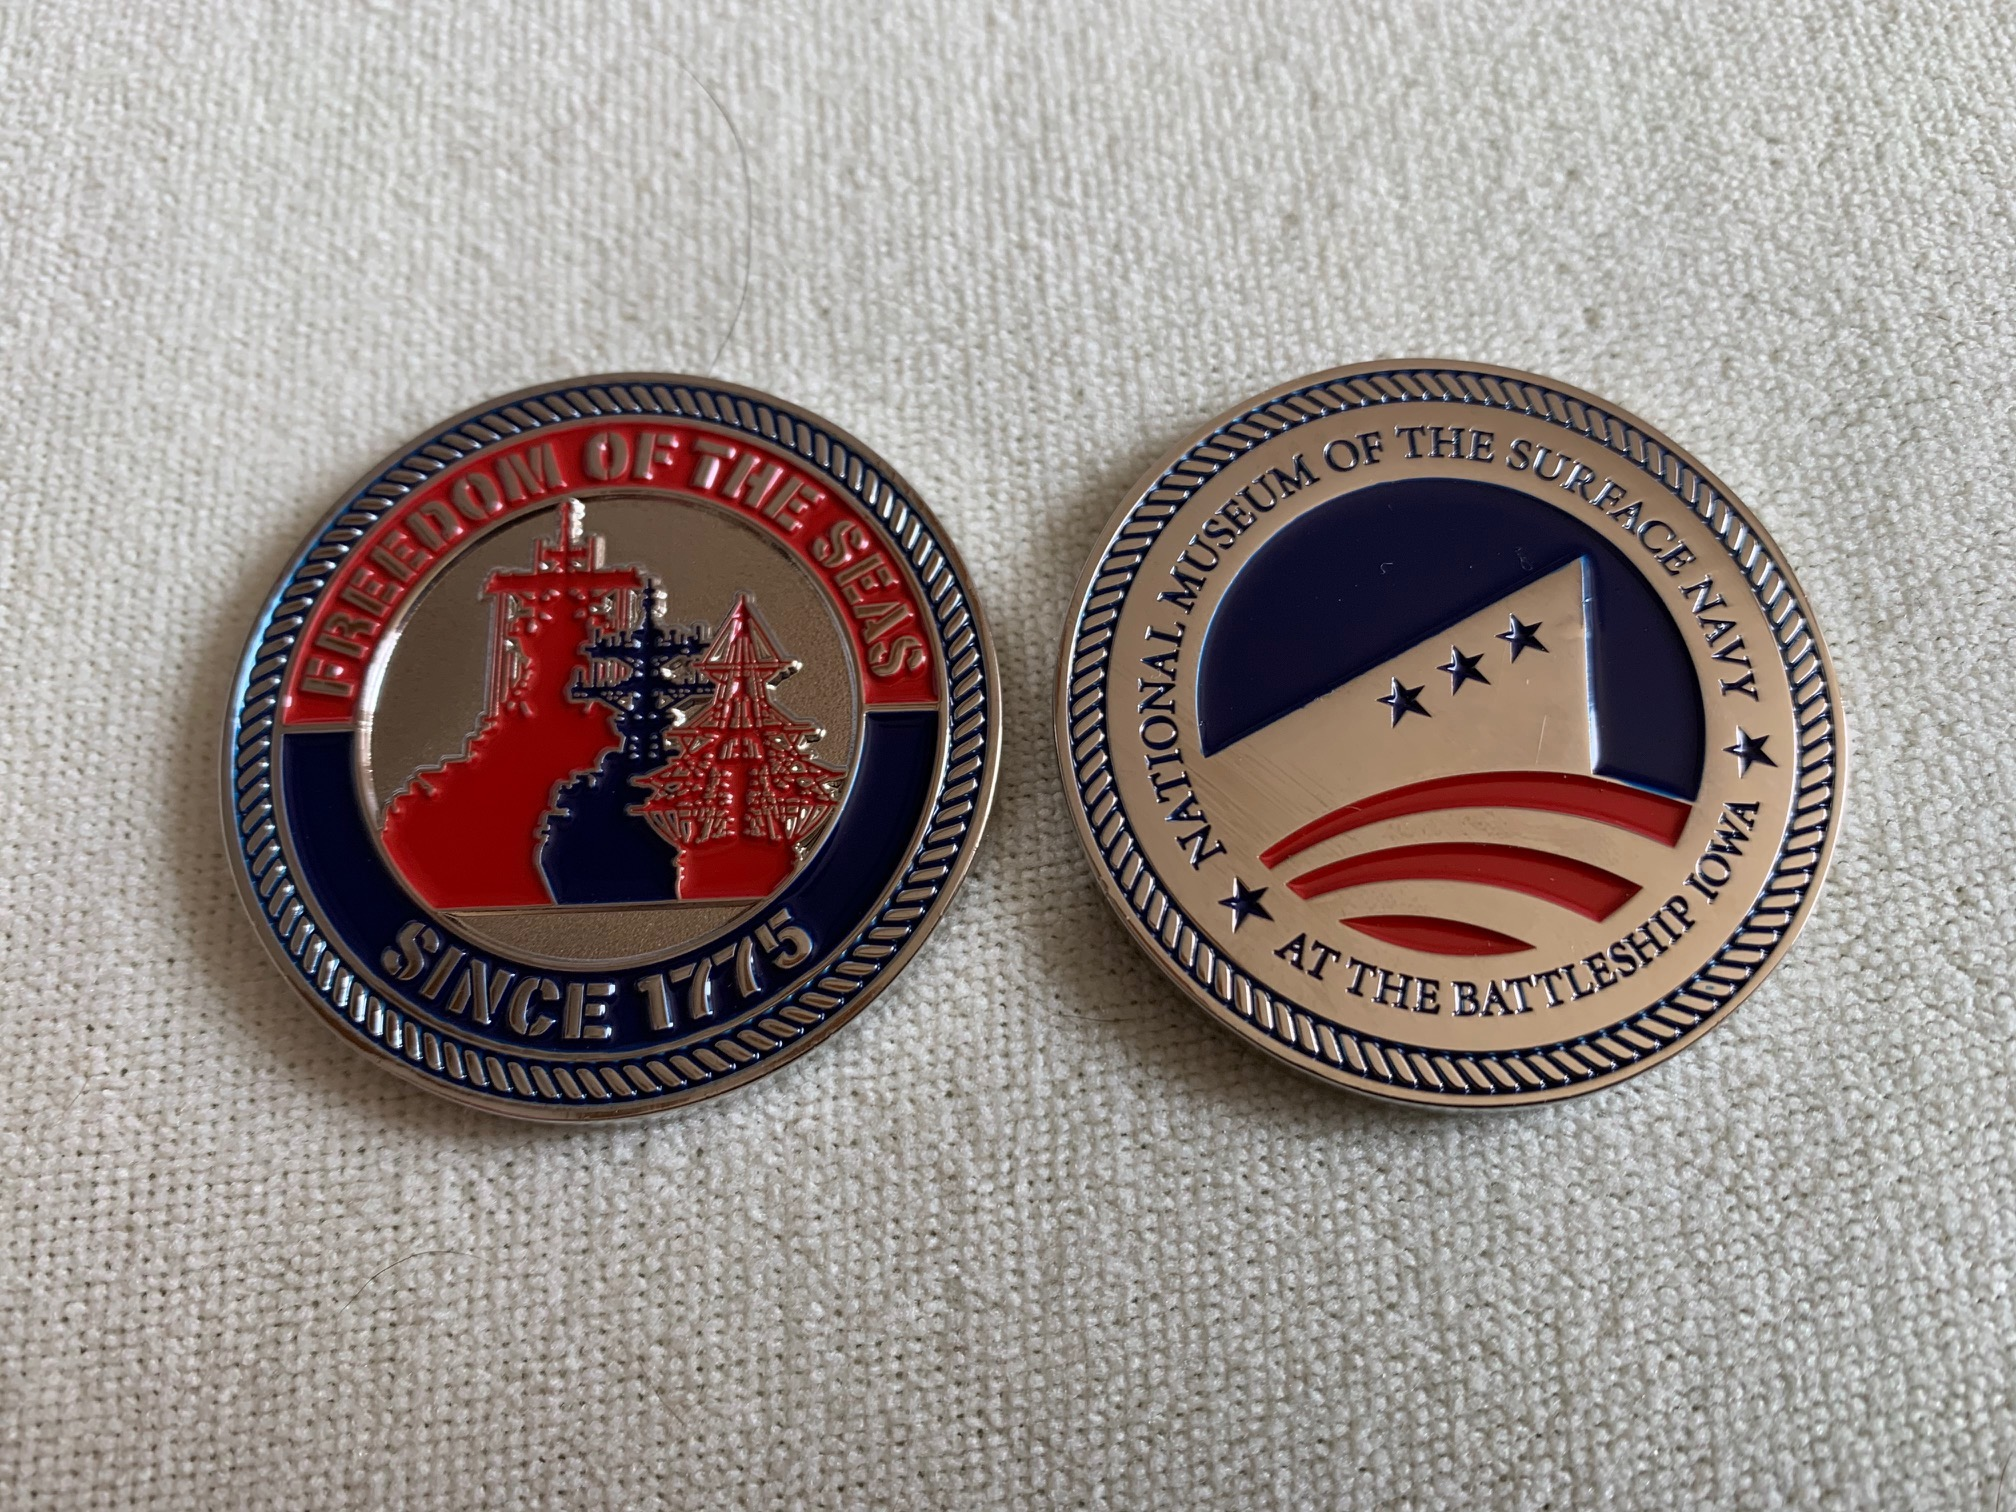 Challenge Coin - National Museum of the Surface Navy